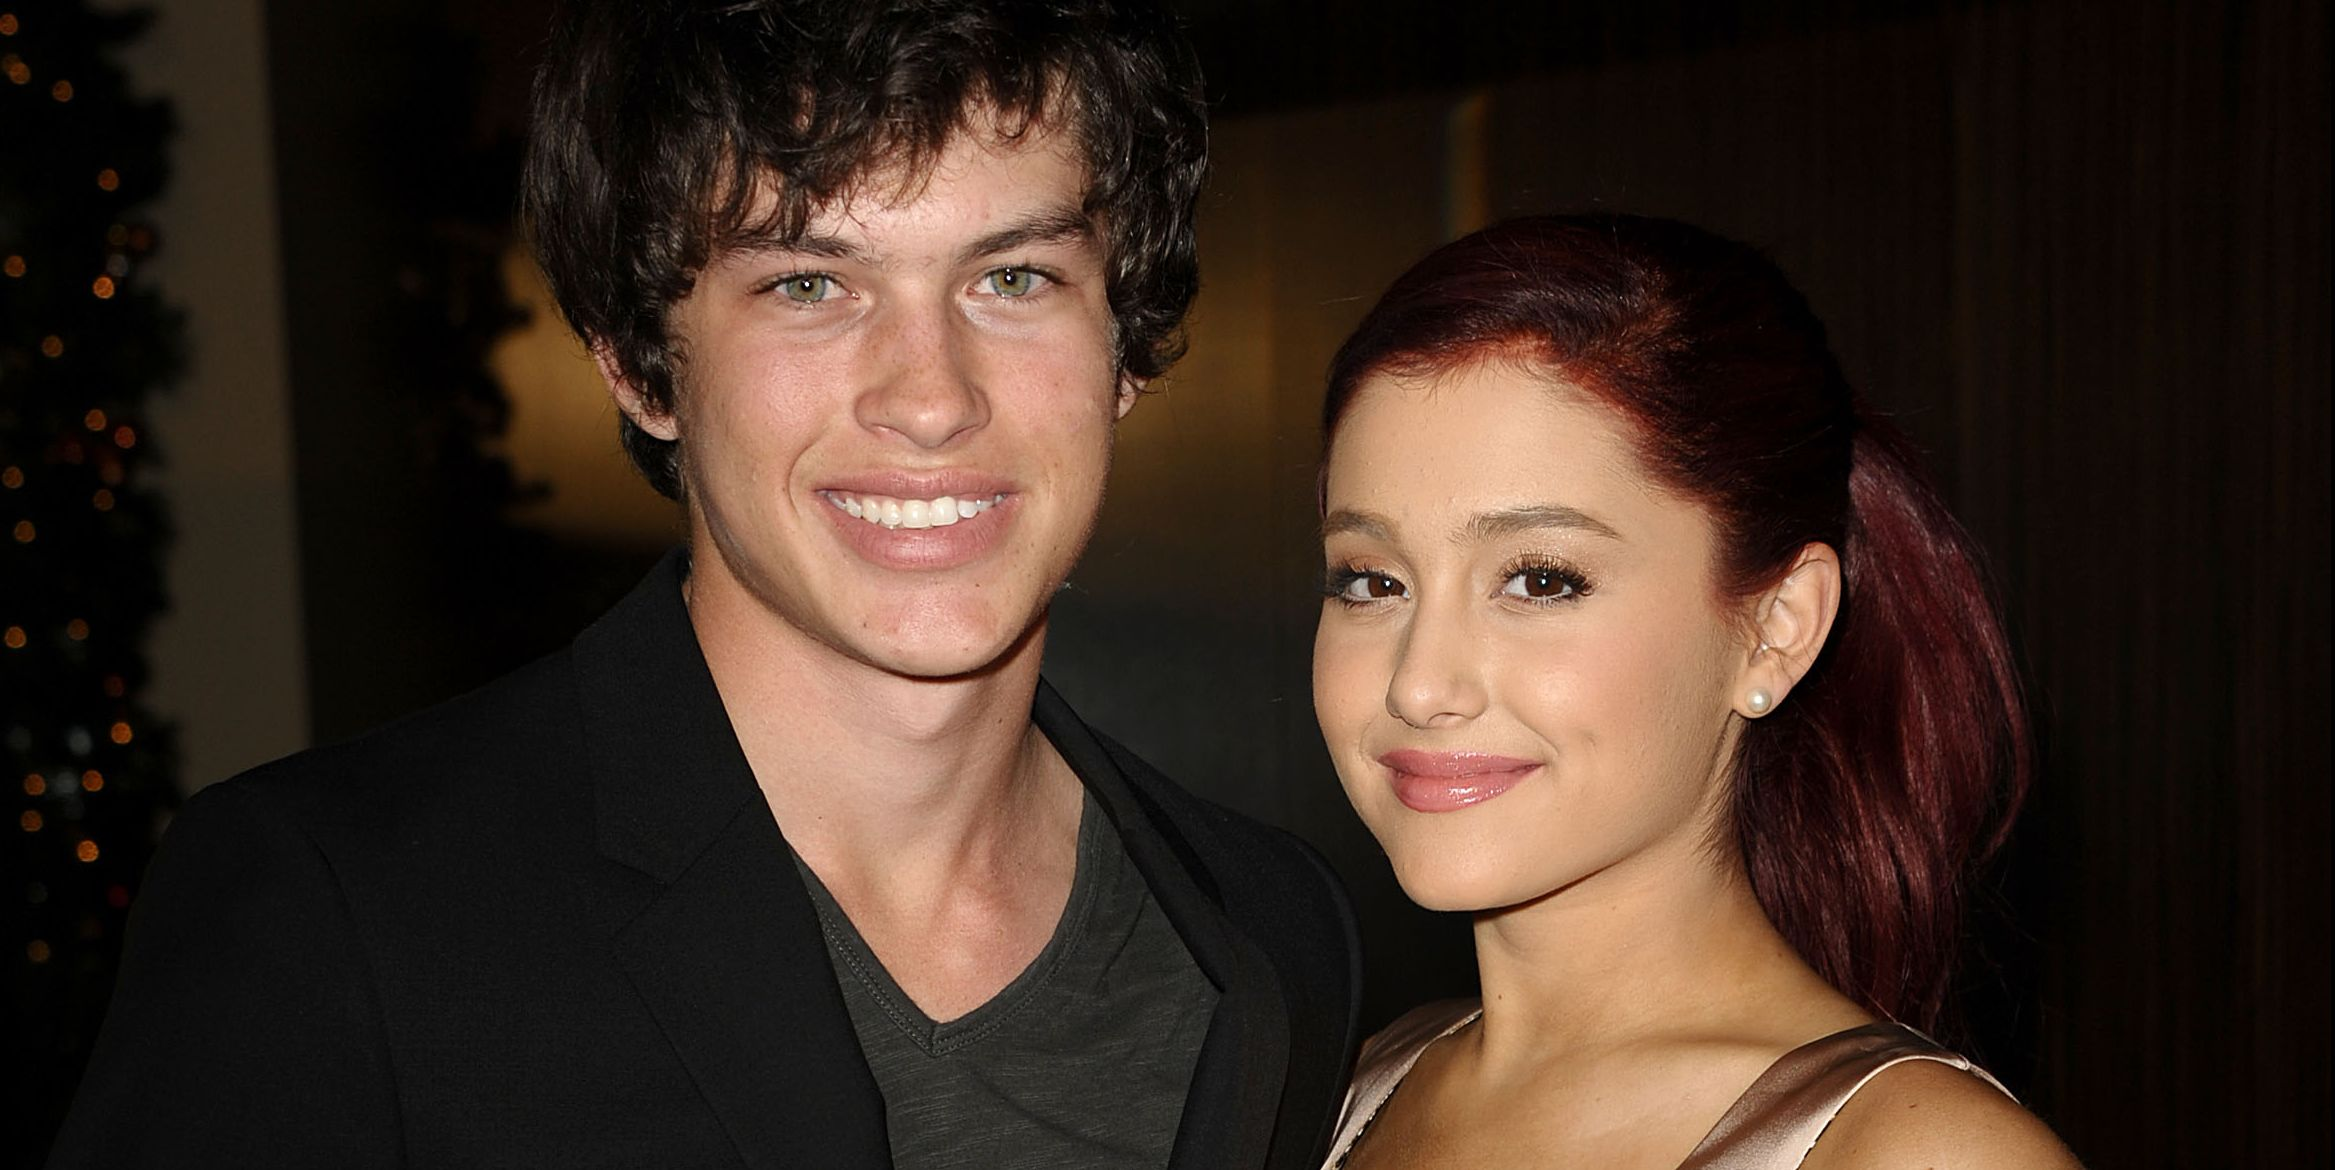 The two dated for three years way back in 2008.